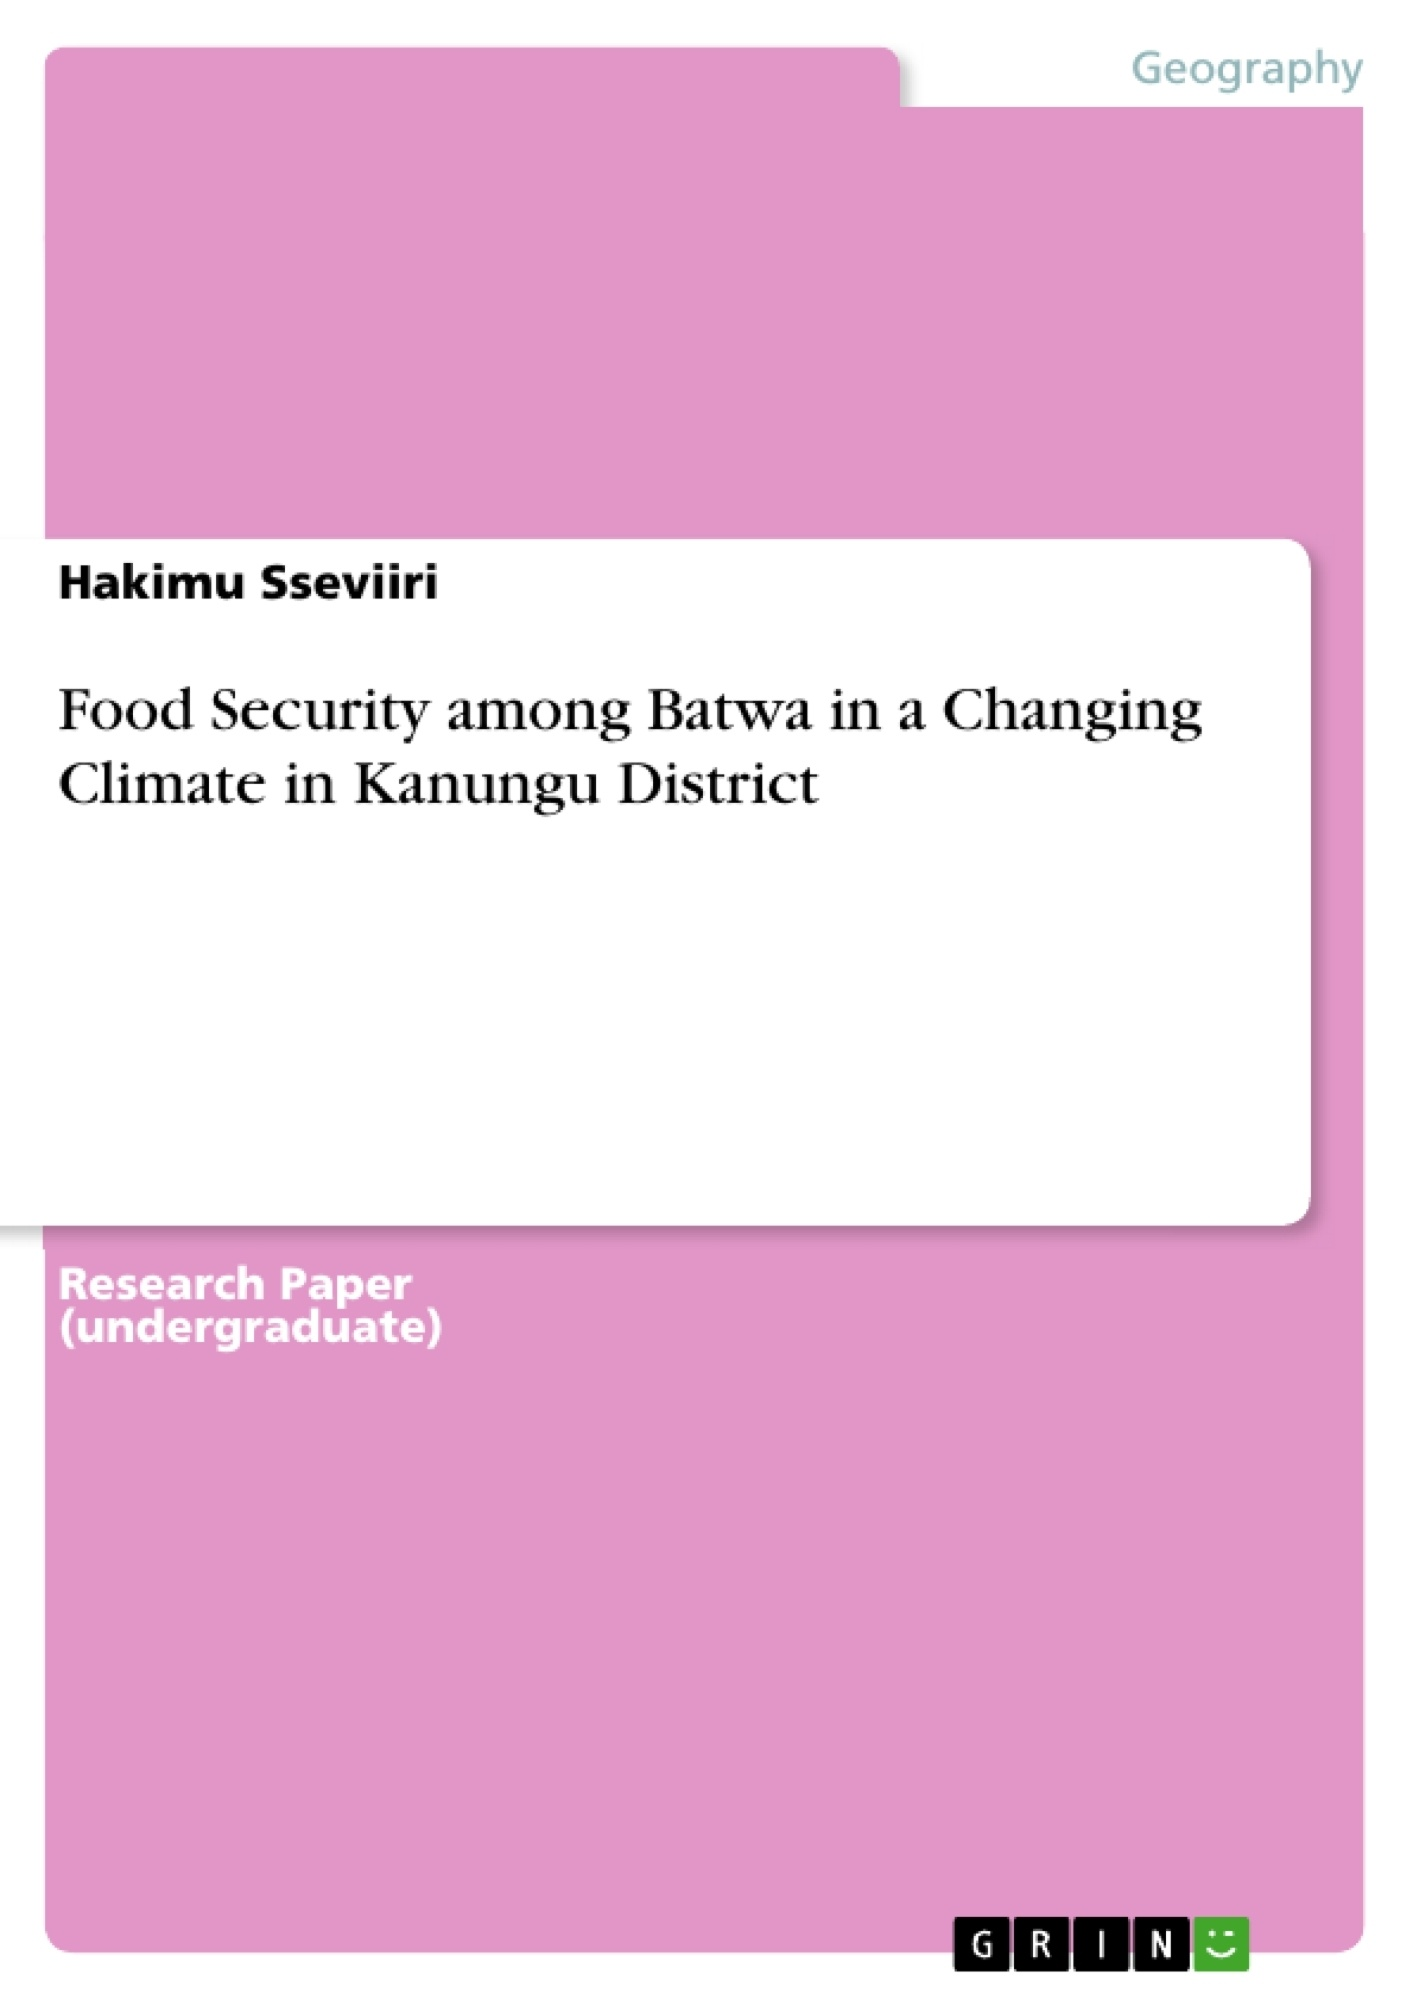 Title: Food Security among Batwa in a Changing Climate in Kanungu District